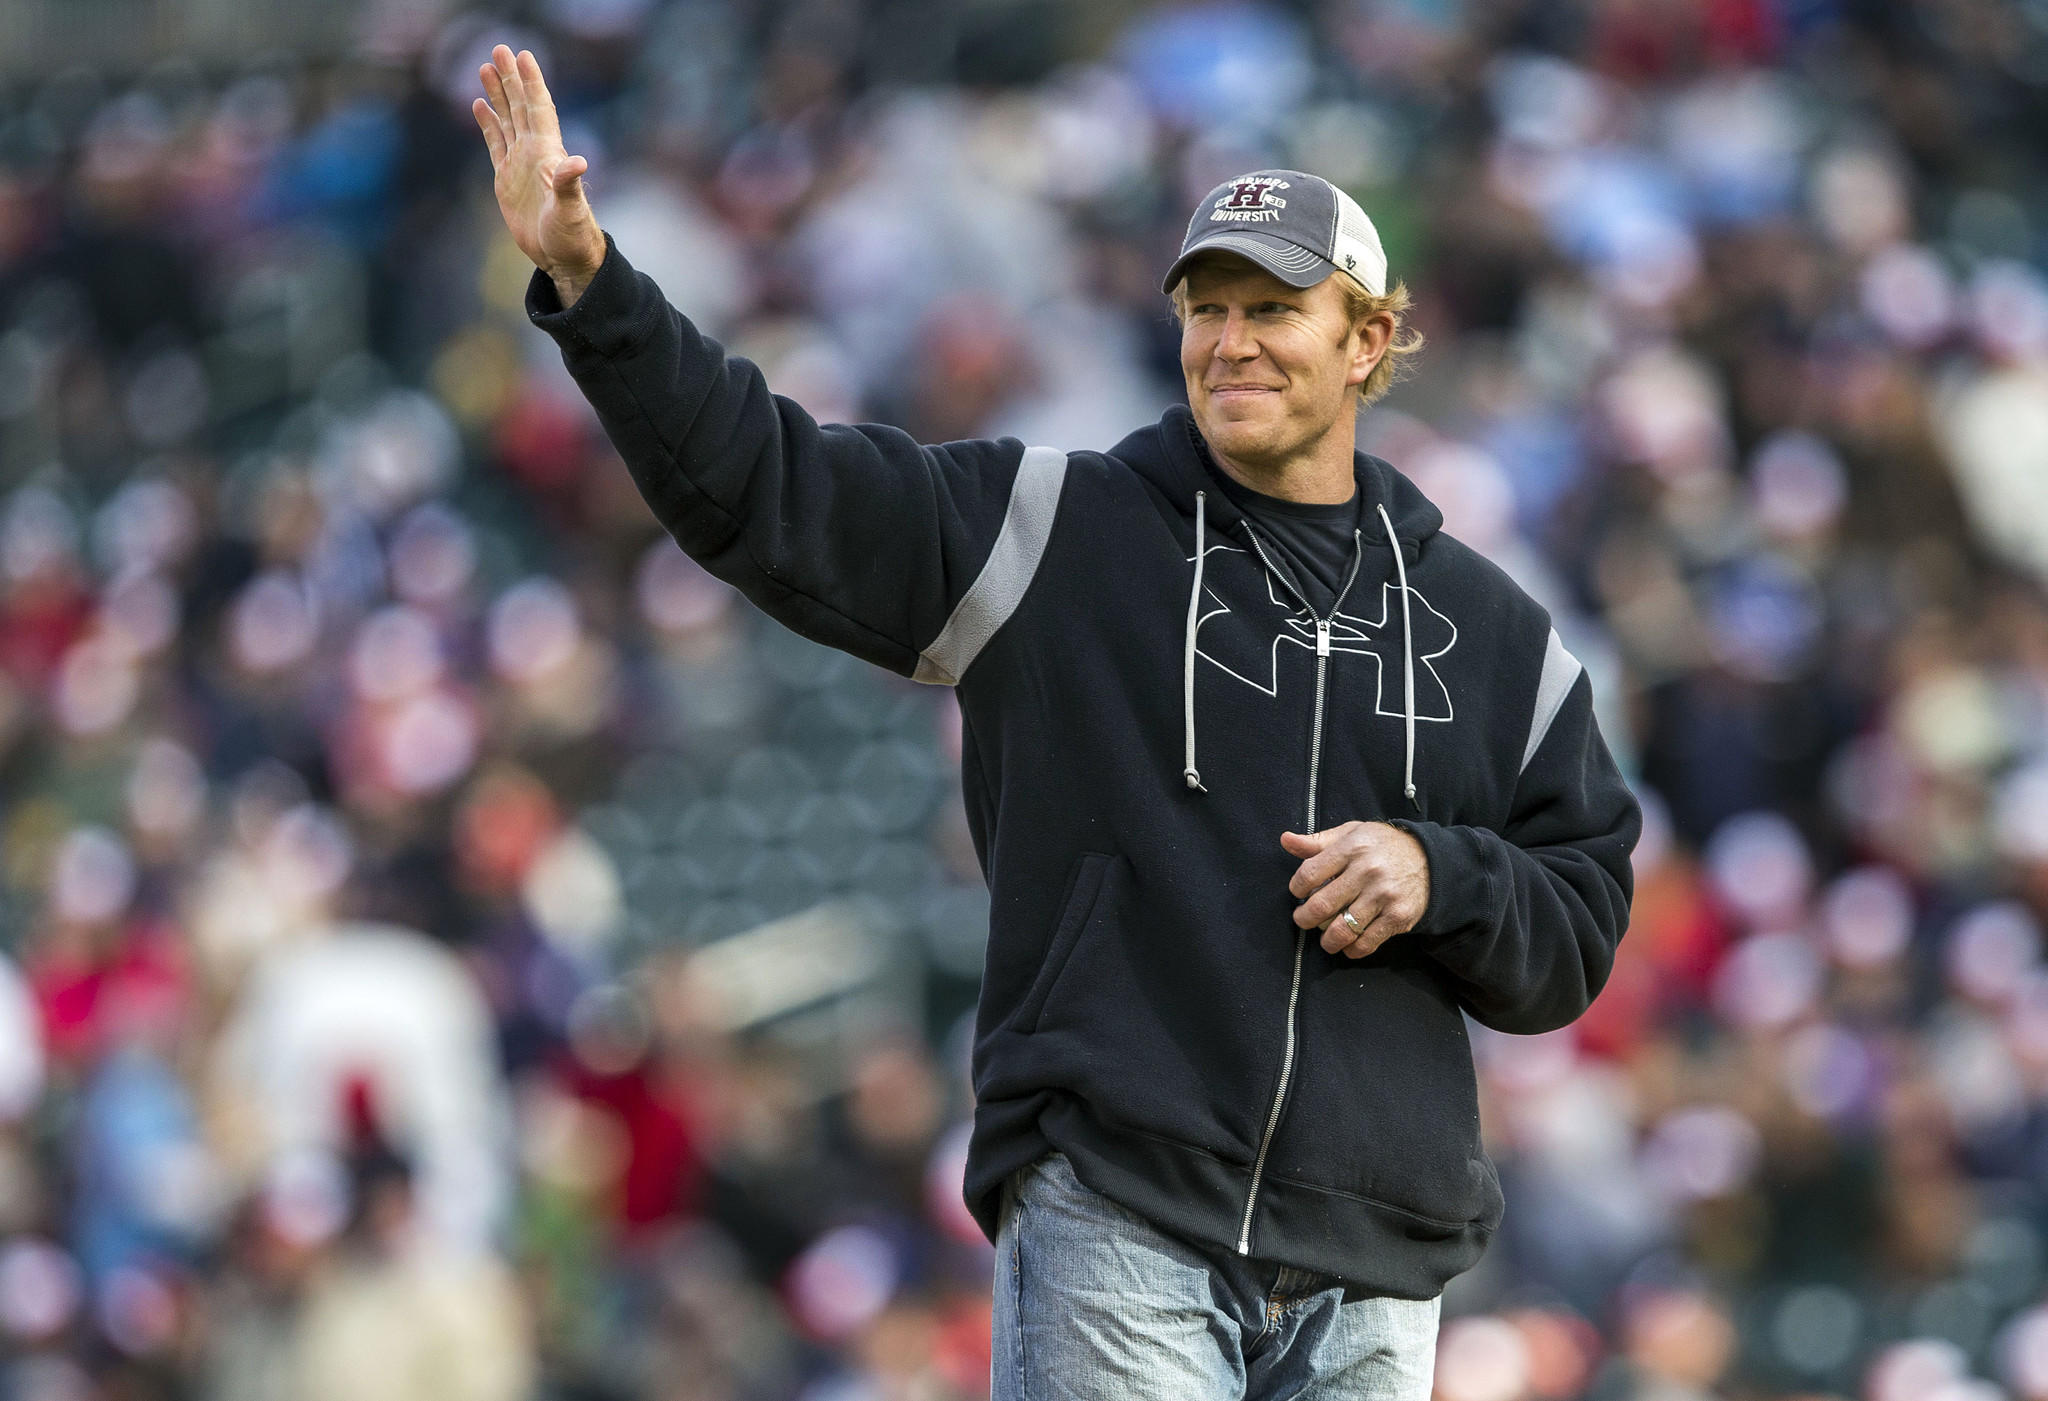 Retired ex-Raven Matt Birk threw out the first pitch at an Orioles-Twins game in Minneapolis last year.